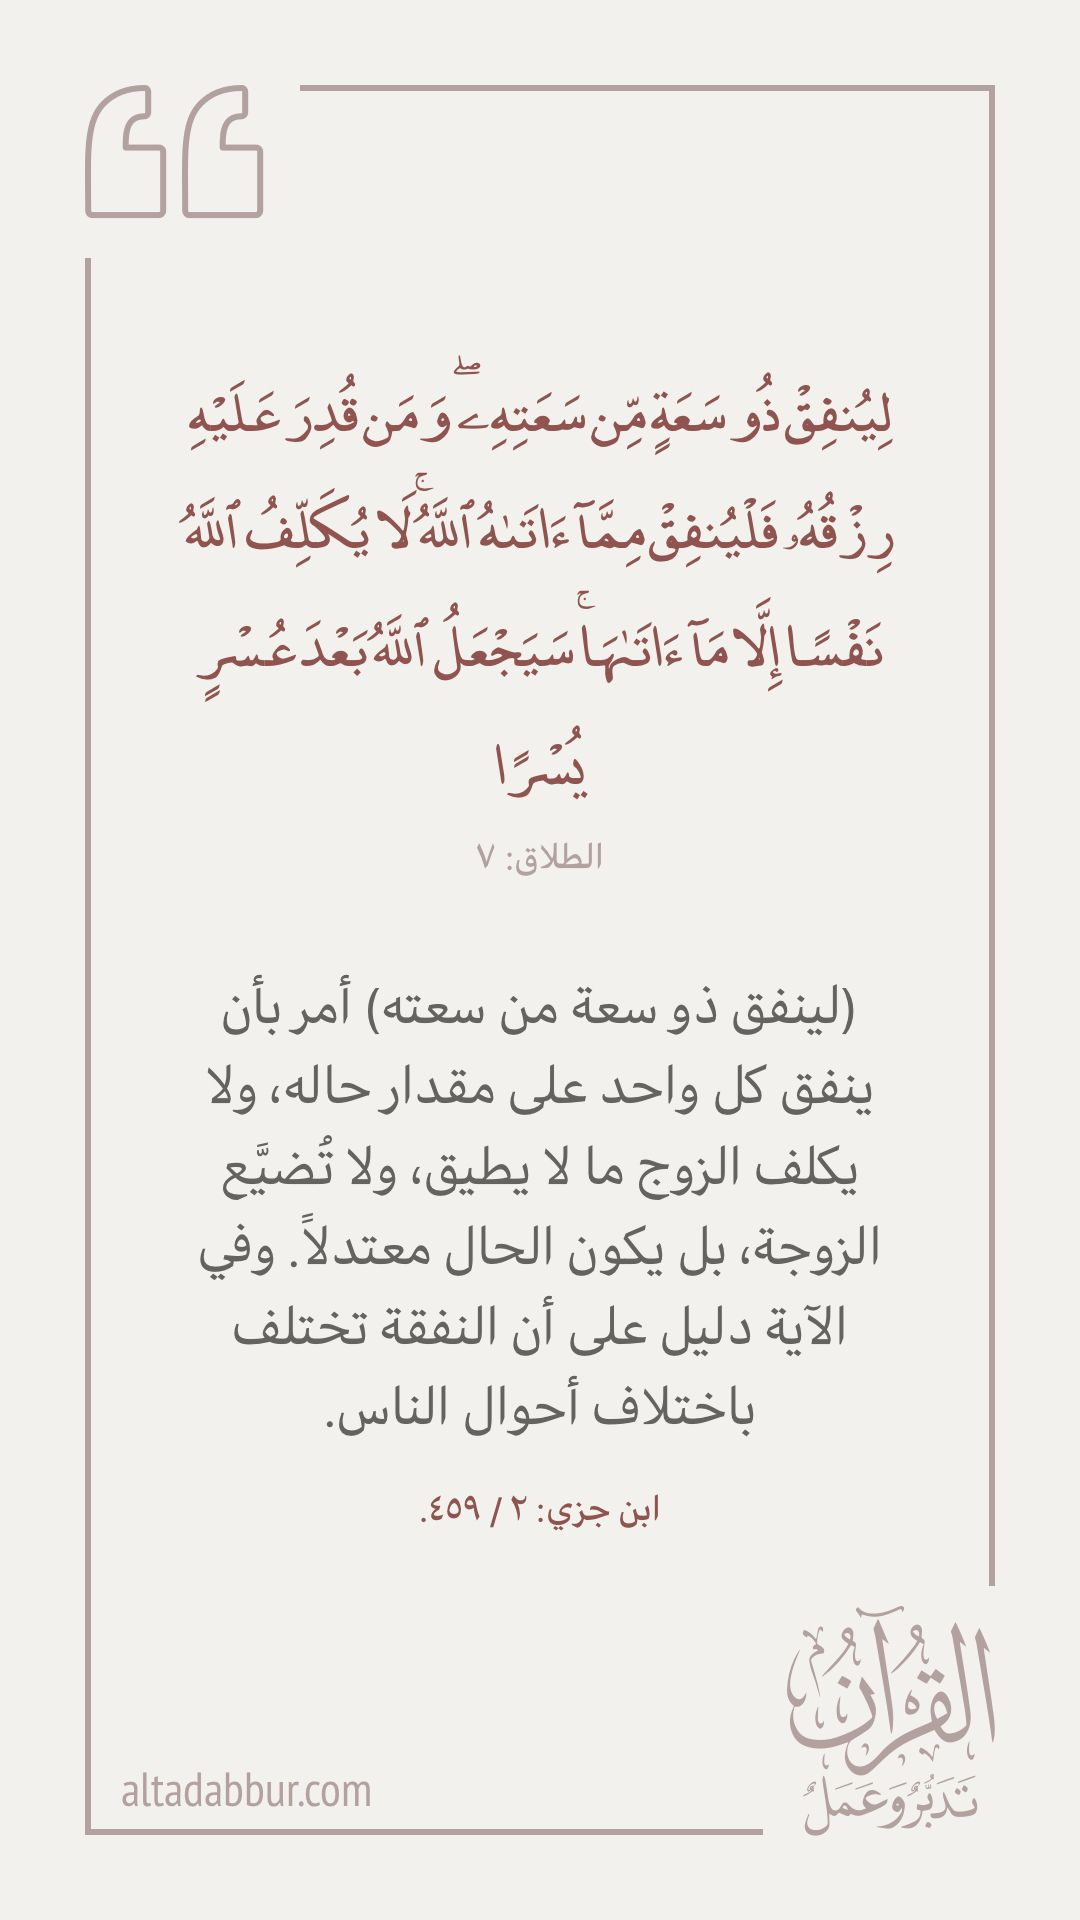 Pin By Eslam Hisn On قرآن تفسير وتدب ر Islamic Messages Quotes Messages